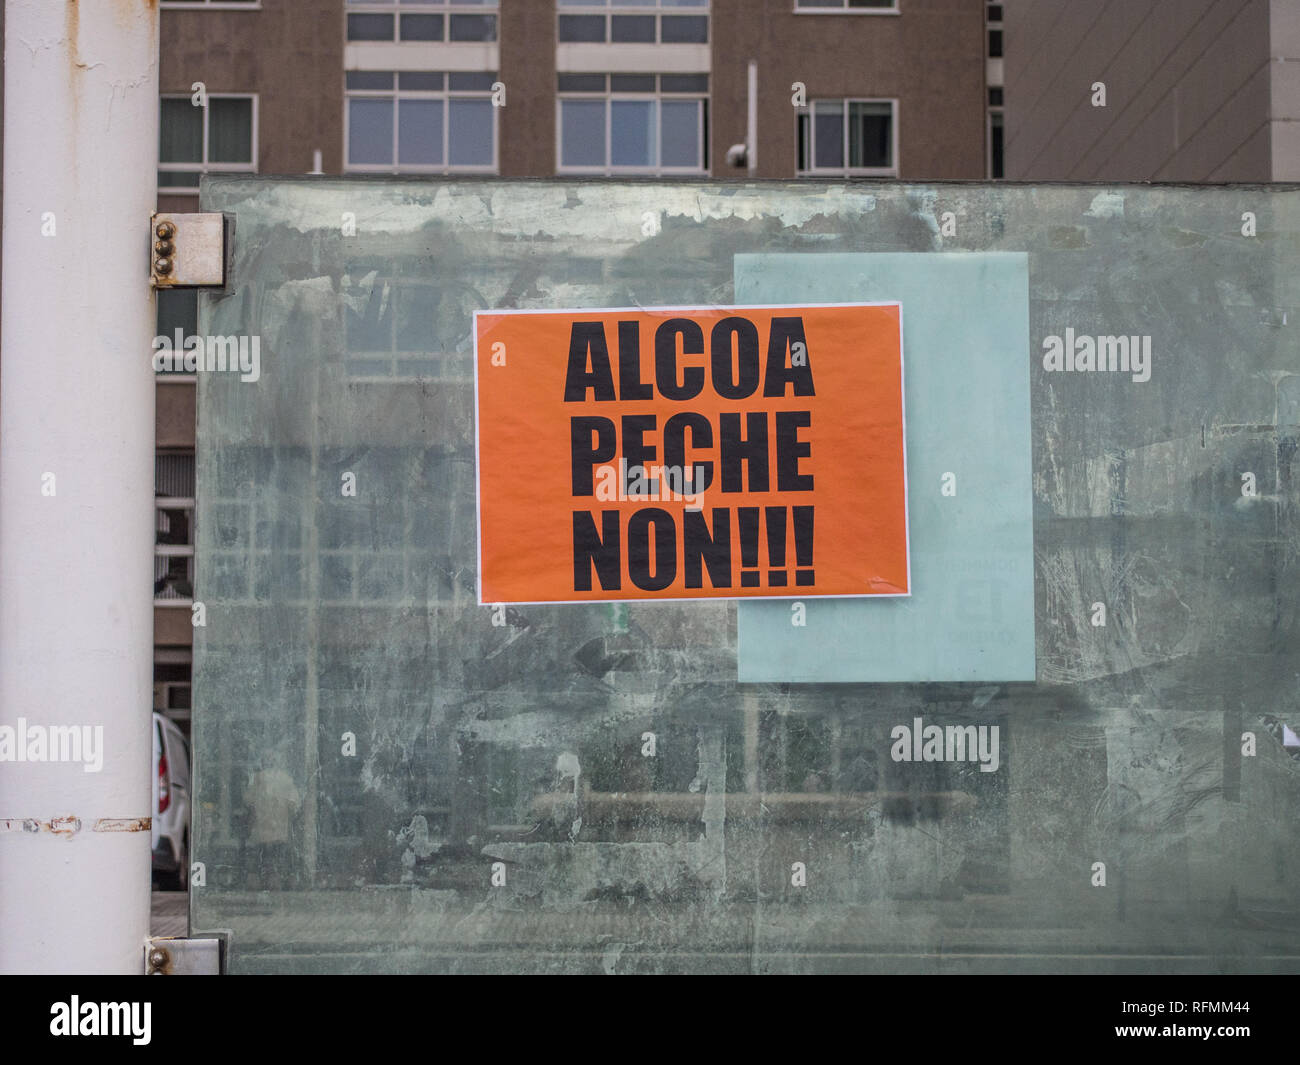 Alcoa Stock Photos & Alcoa Stock Images - Alamy